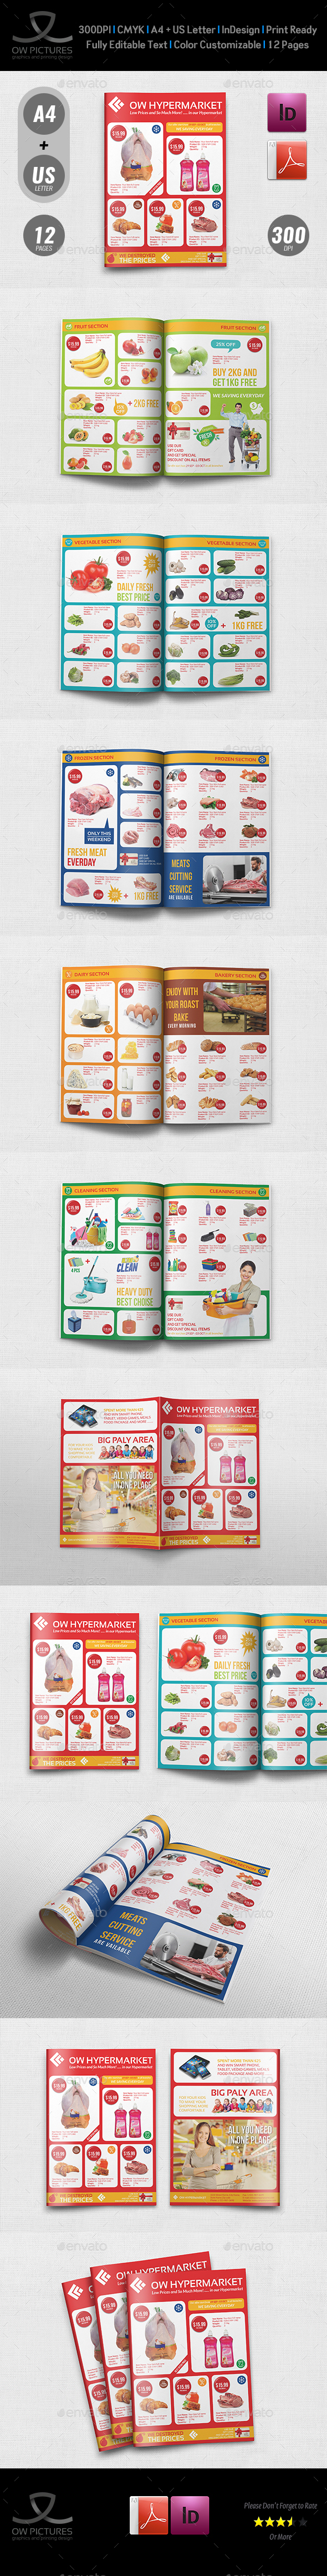 Supermarket Catalog Brochure Template Vol.4 - 12 Pages - Catalogs Brochures